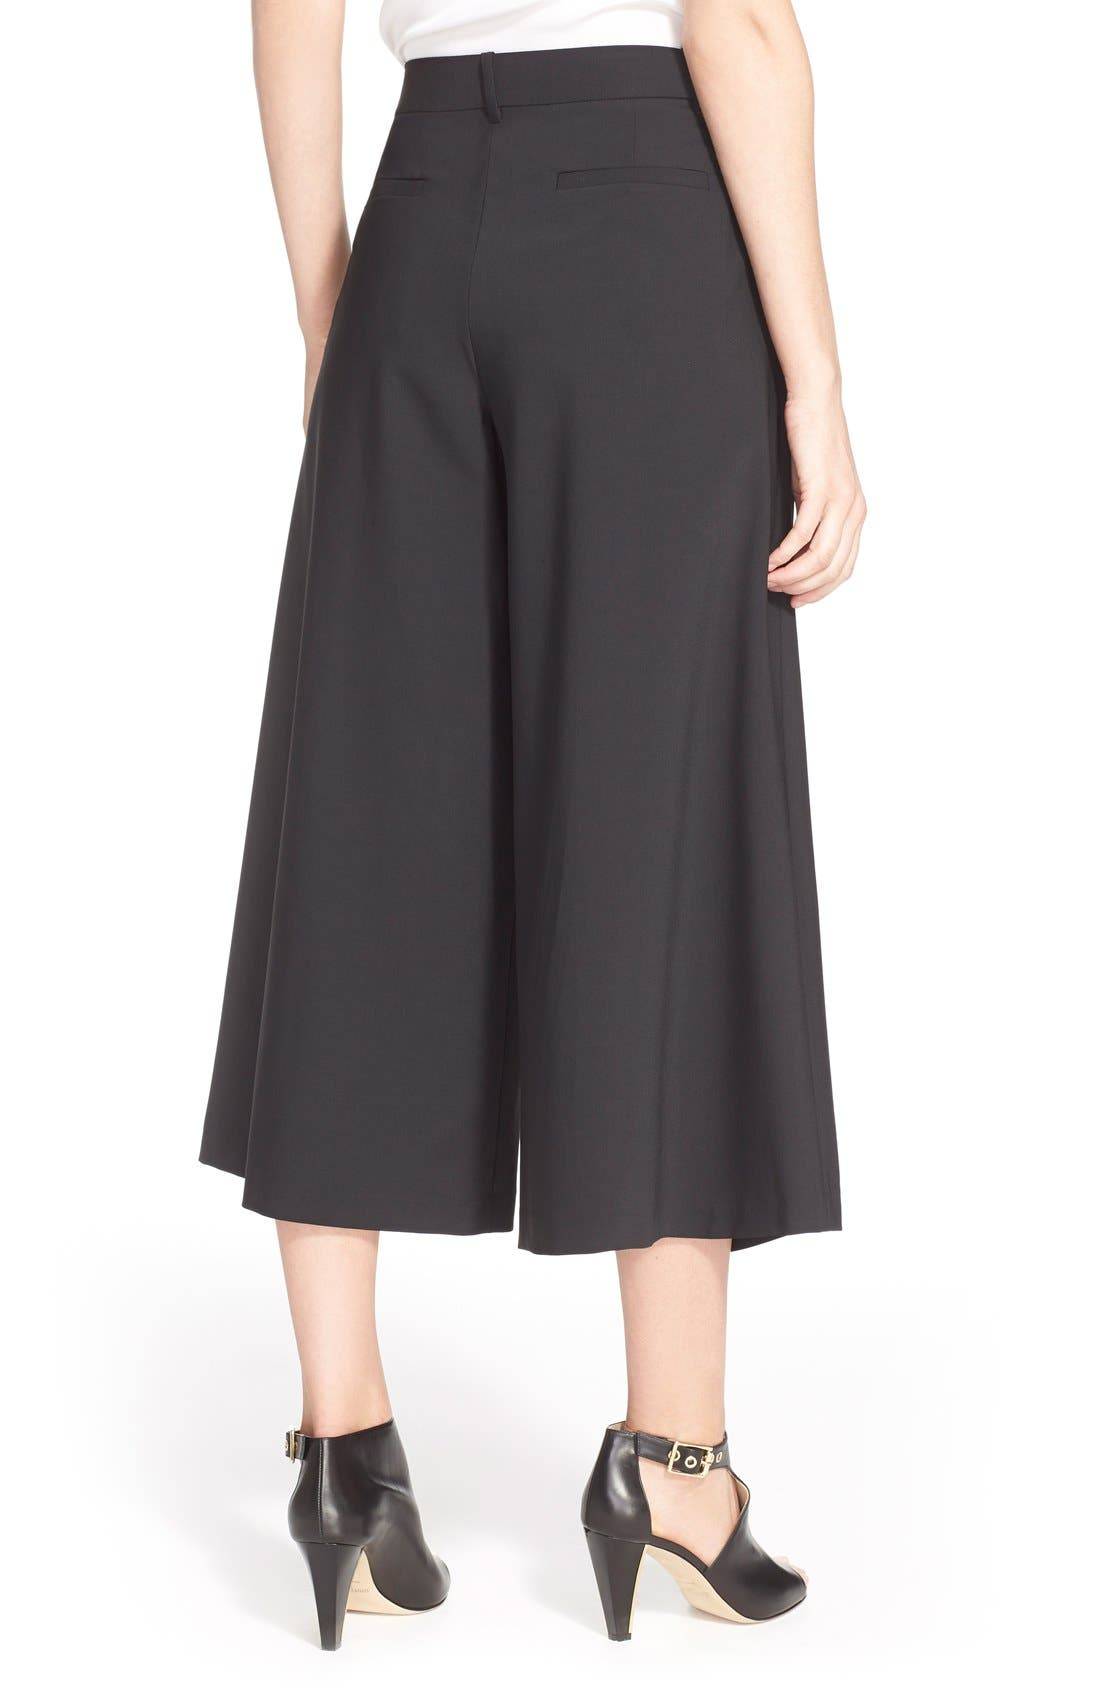 TIBI, Pleated Silk Culottes, Alternate thumbnail 3, color, 001